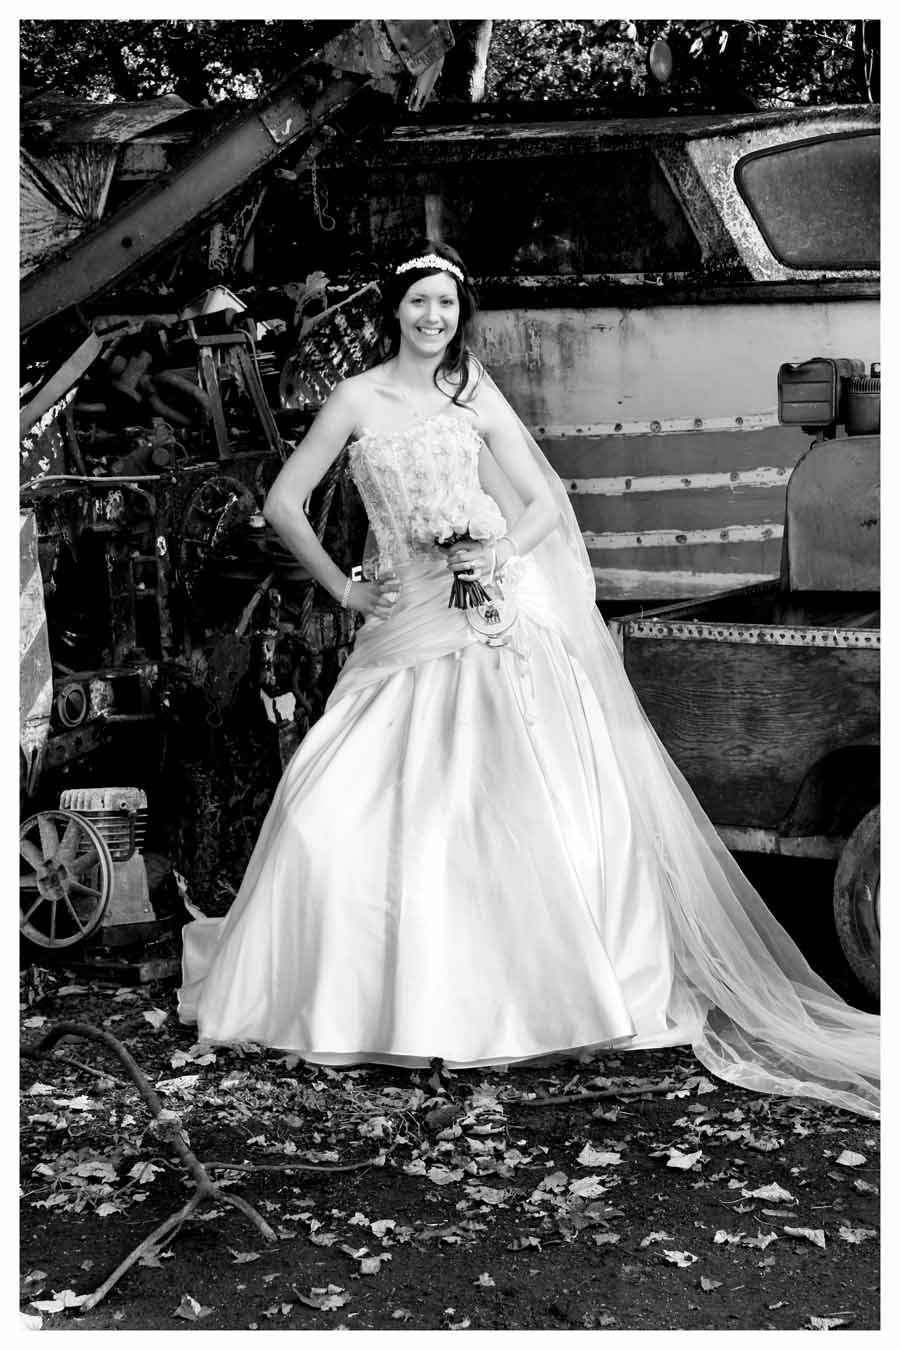 BRIDE Photos by Simeon Thaw copyright 2014 (91).jpg